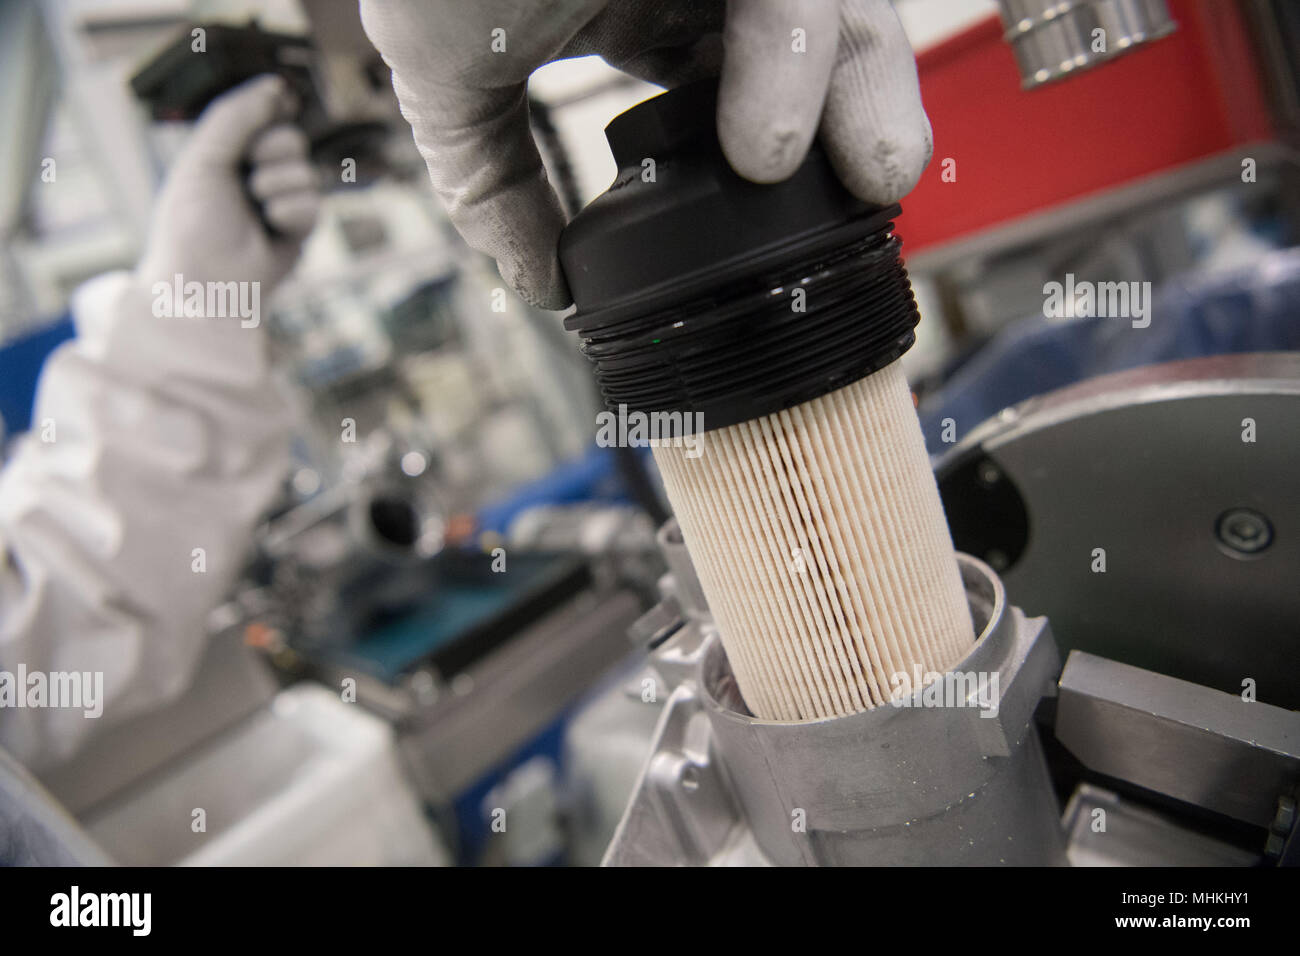 Fuel Filter Stock Photos Images Alamy Deisel Mann Bases 17 April 2018 Germany Ludwigsburg A Staff Member Of Automotive Supplier And Car